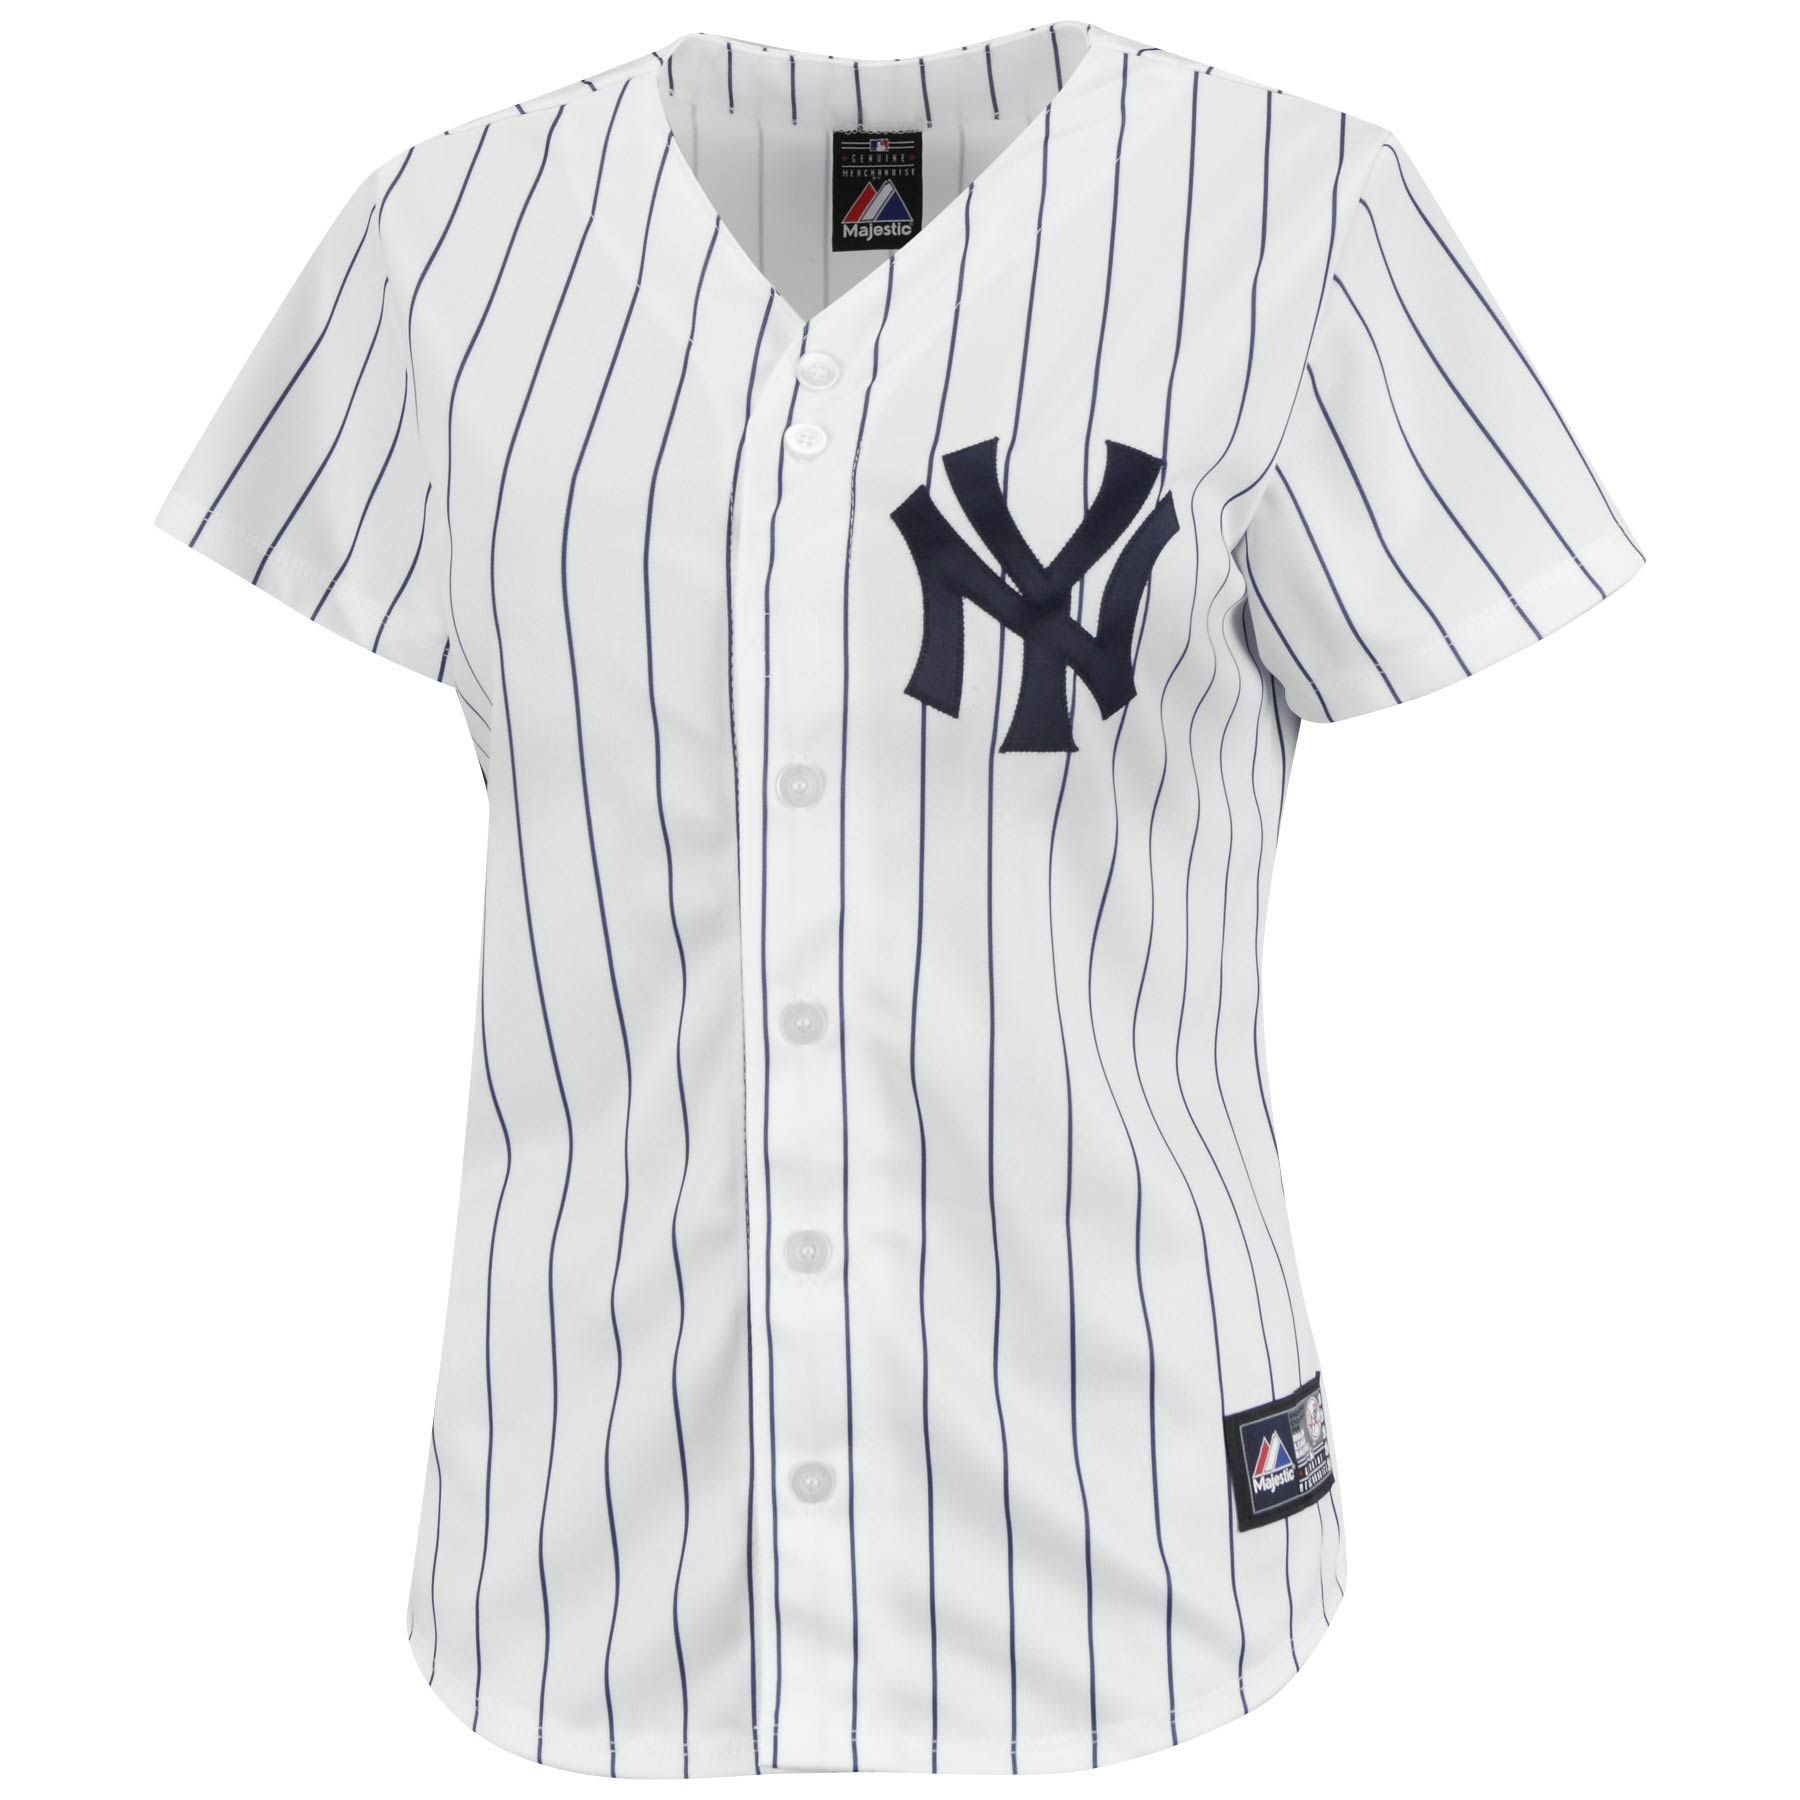 214a64d2d Baseball Jersey for Women | New York Yankees Women's Replica Home MLB  Baseball Jersey